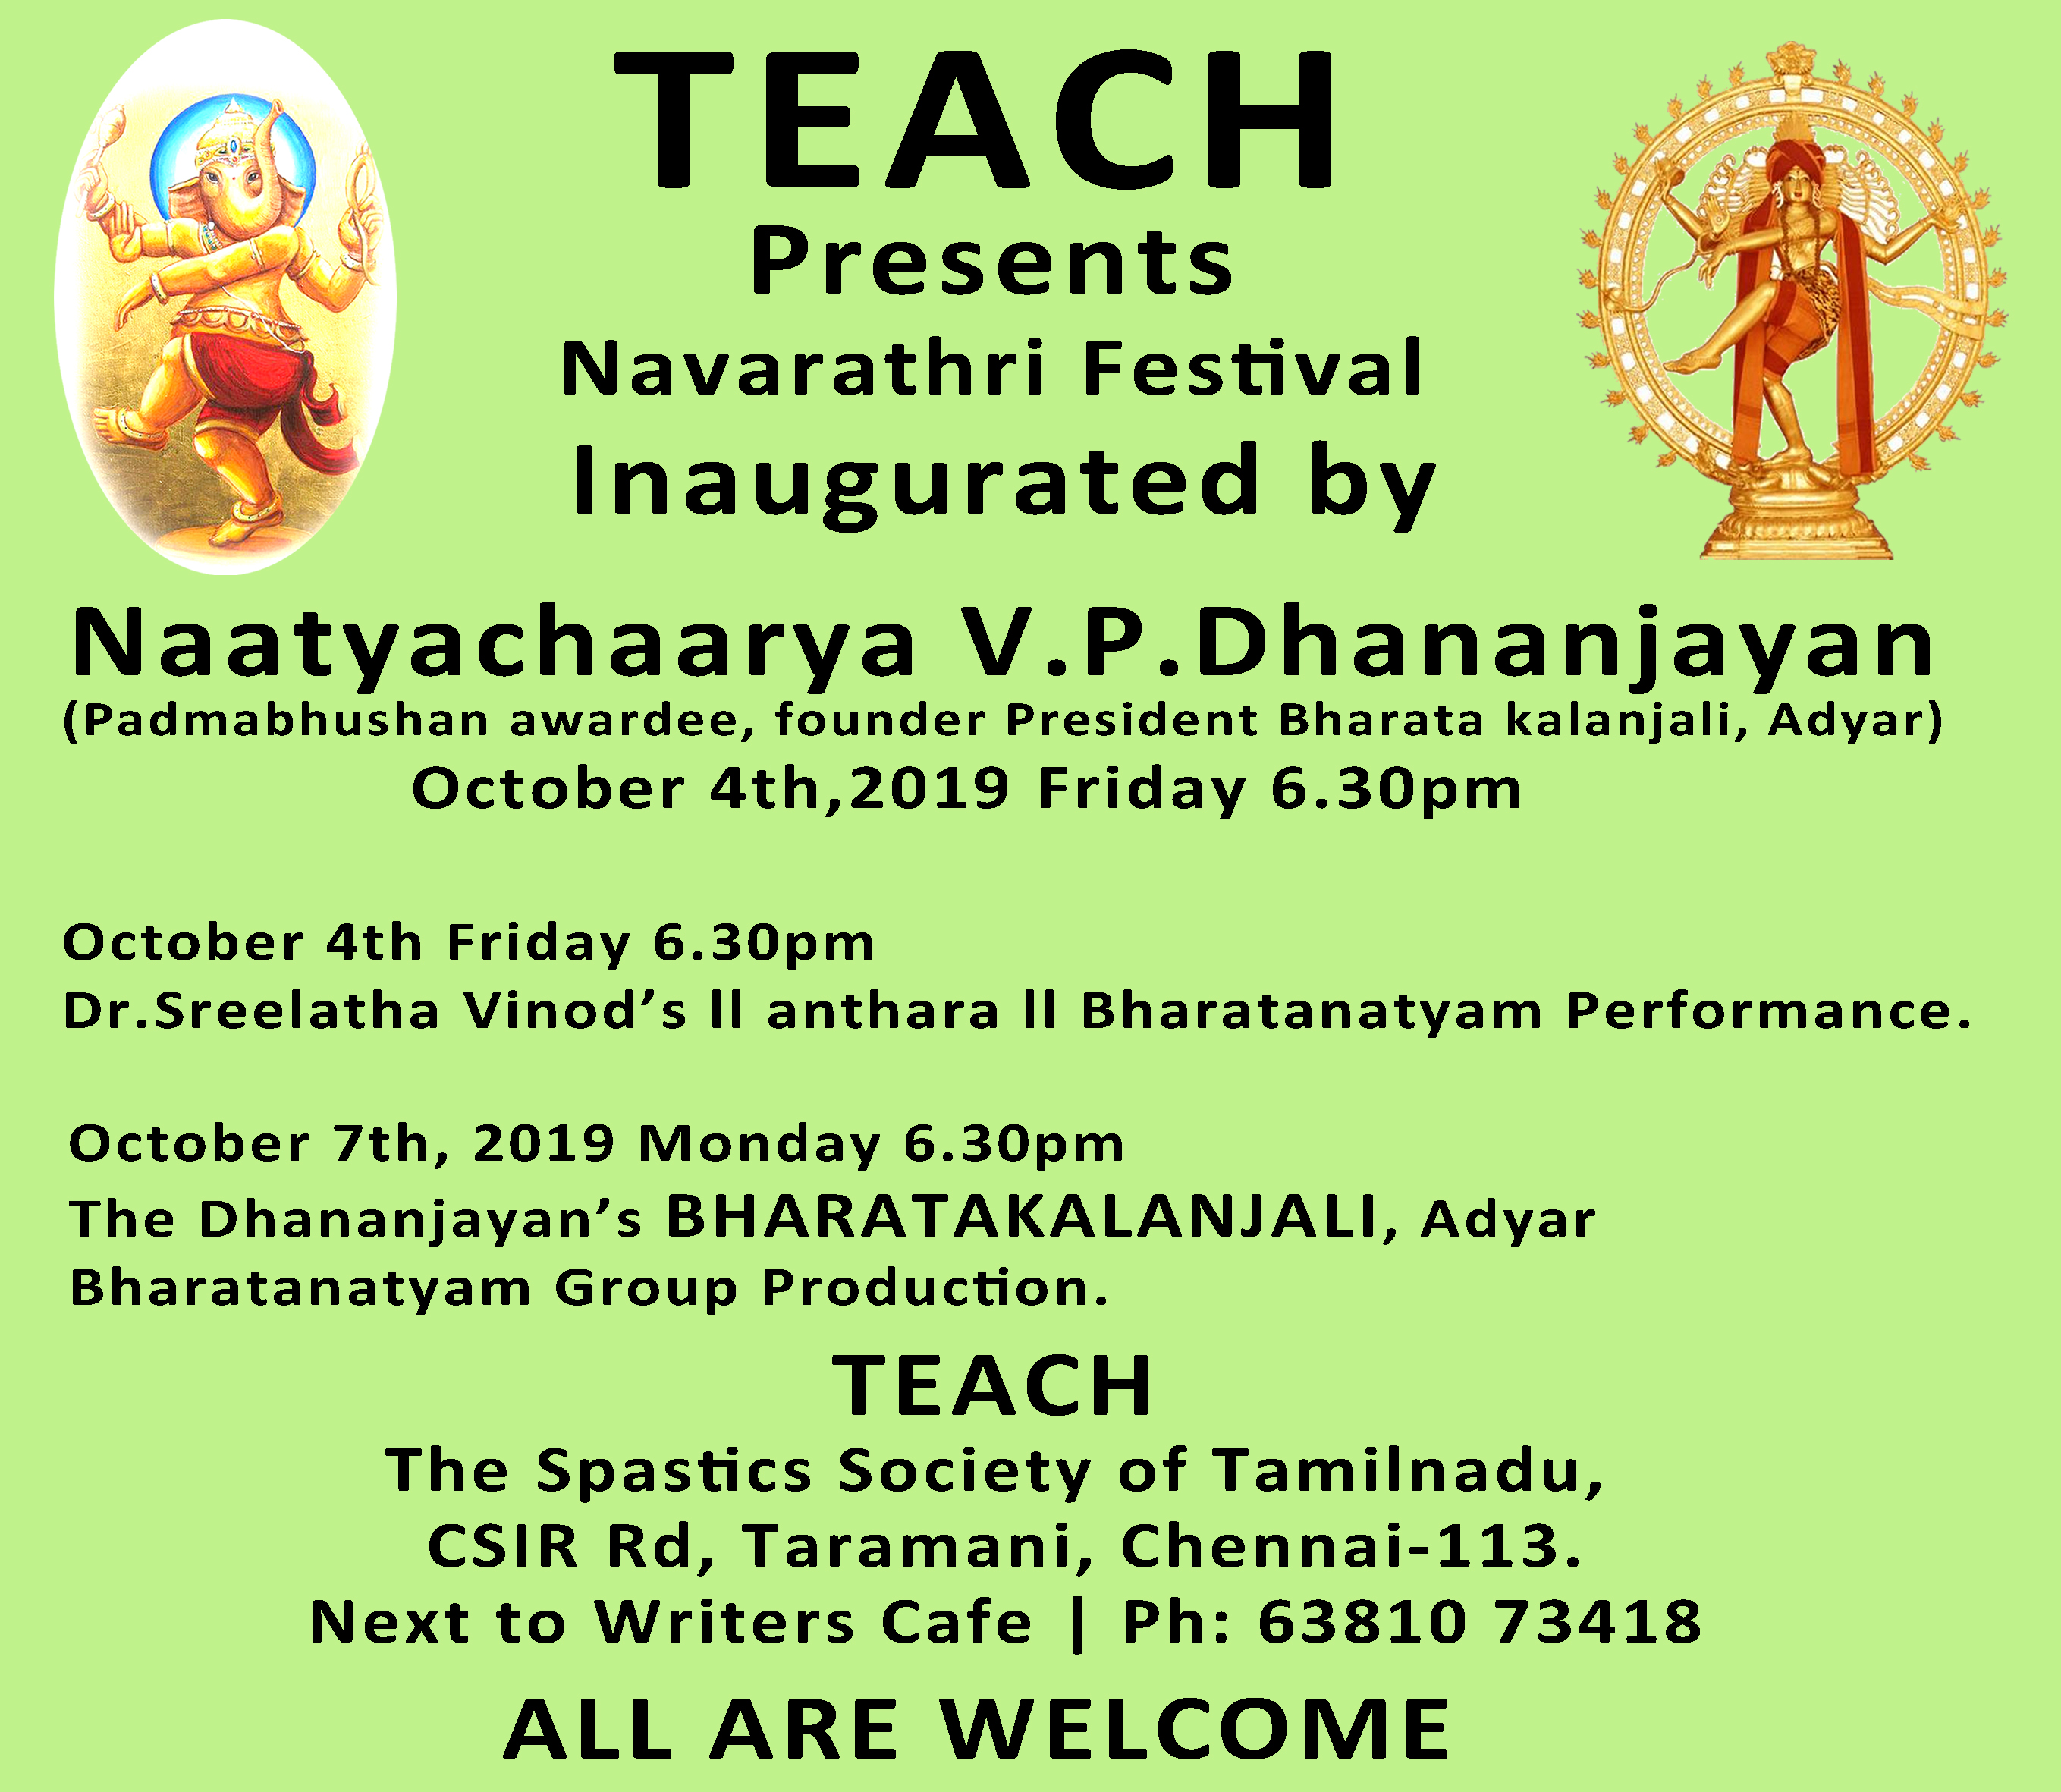 TEACH presents NAVARATHRI Festival